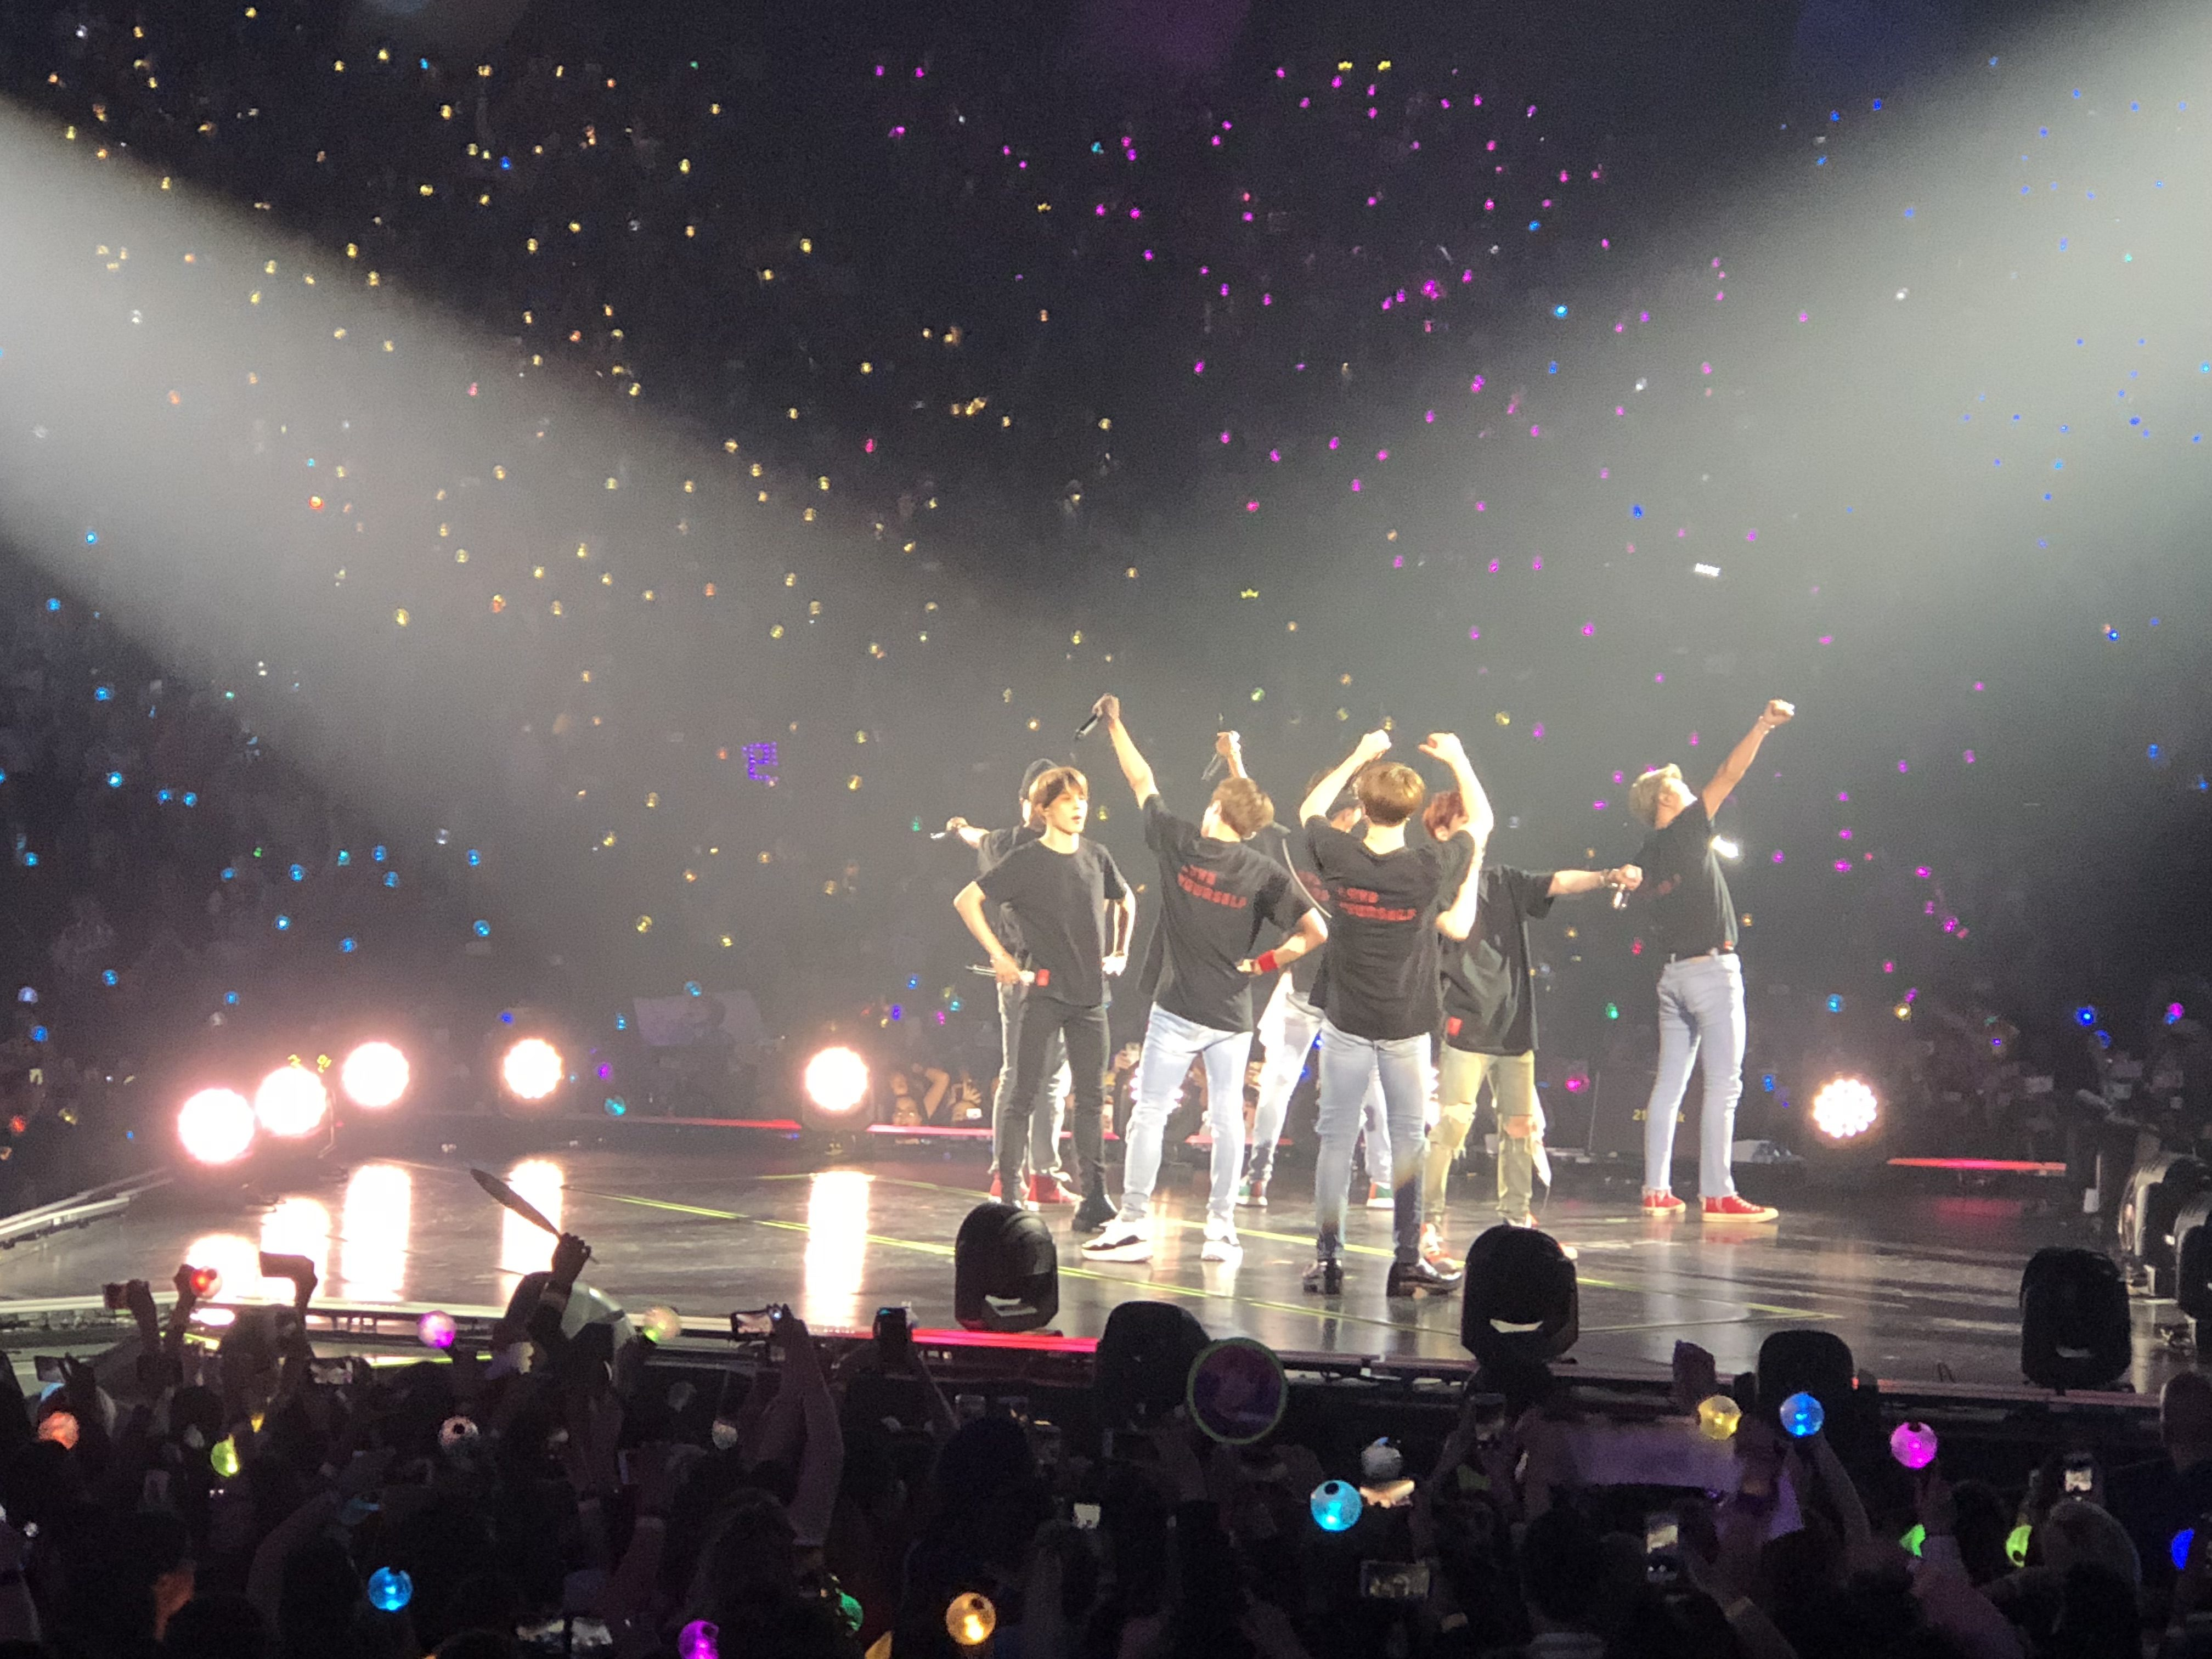 Band BTS on stage waving to fans in audience.